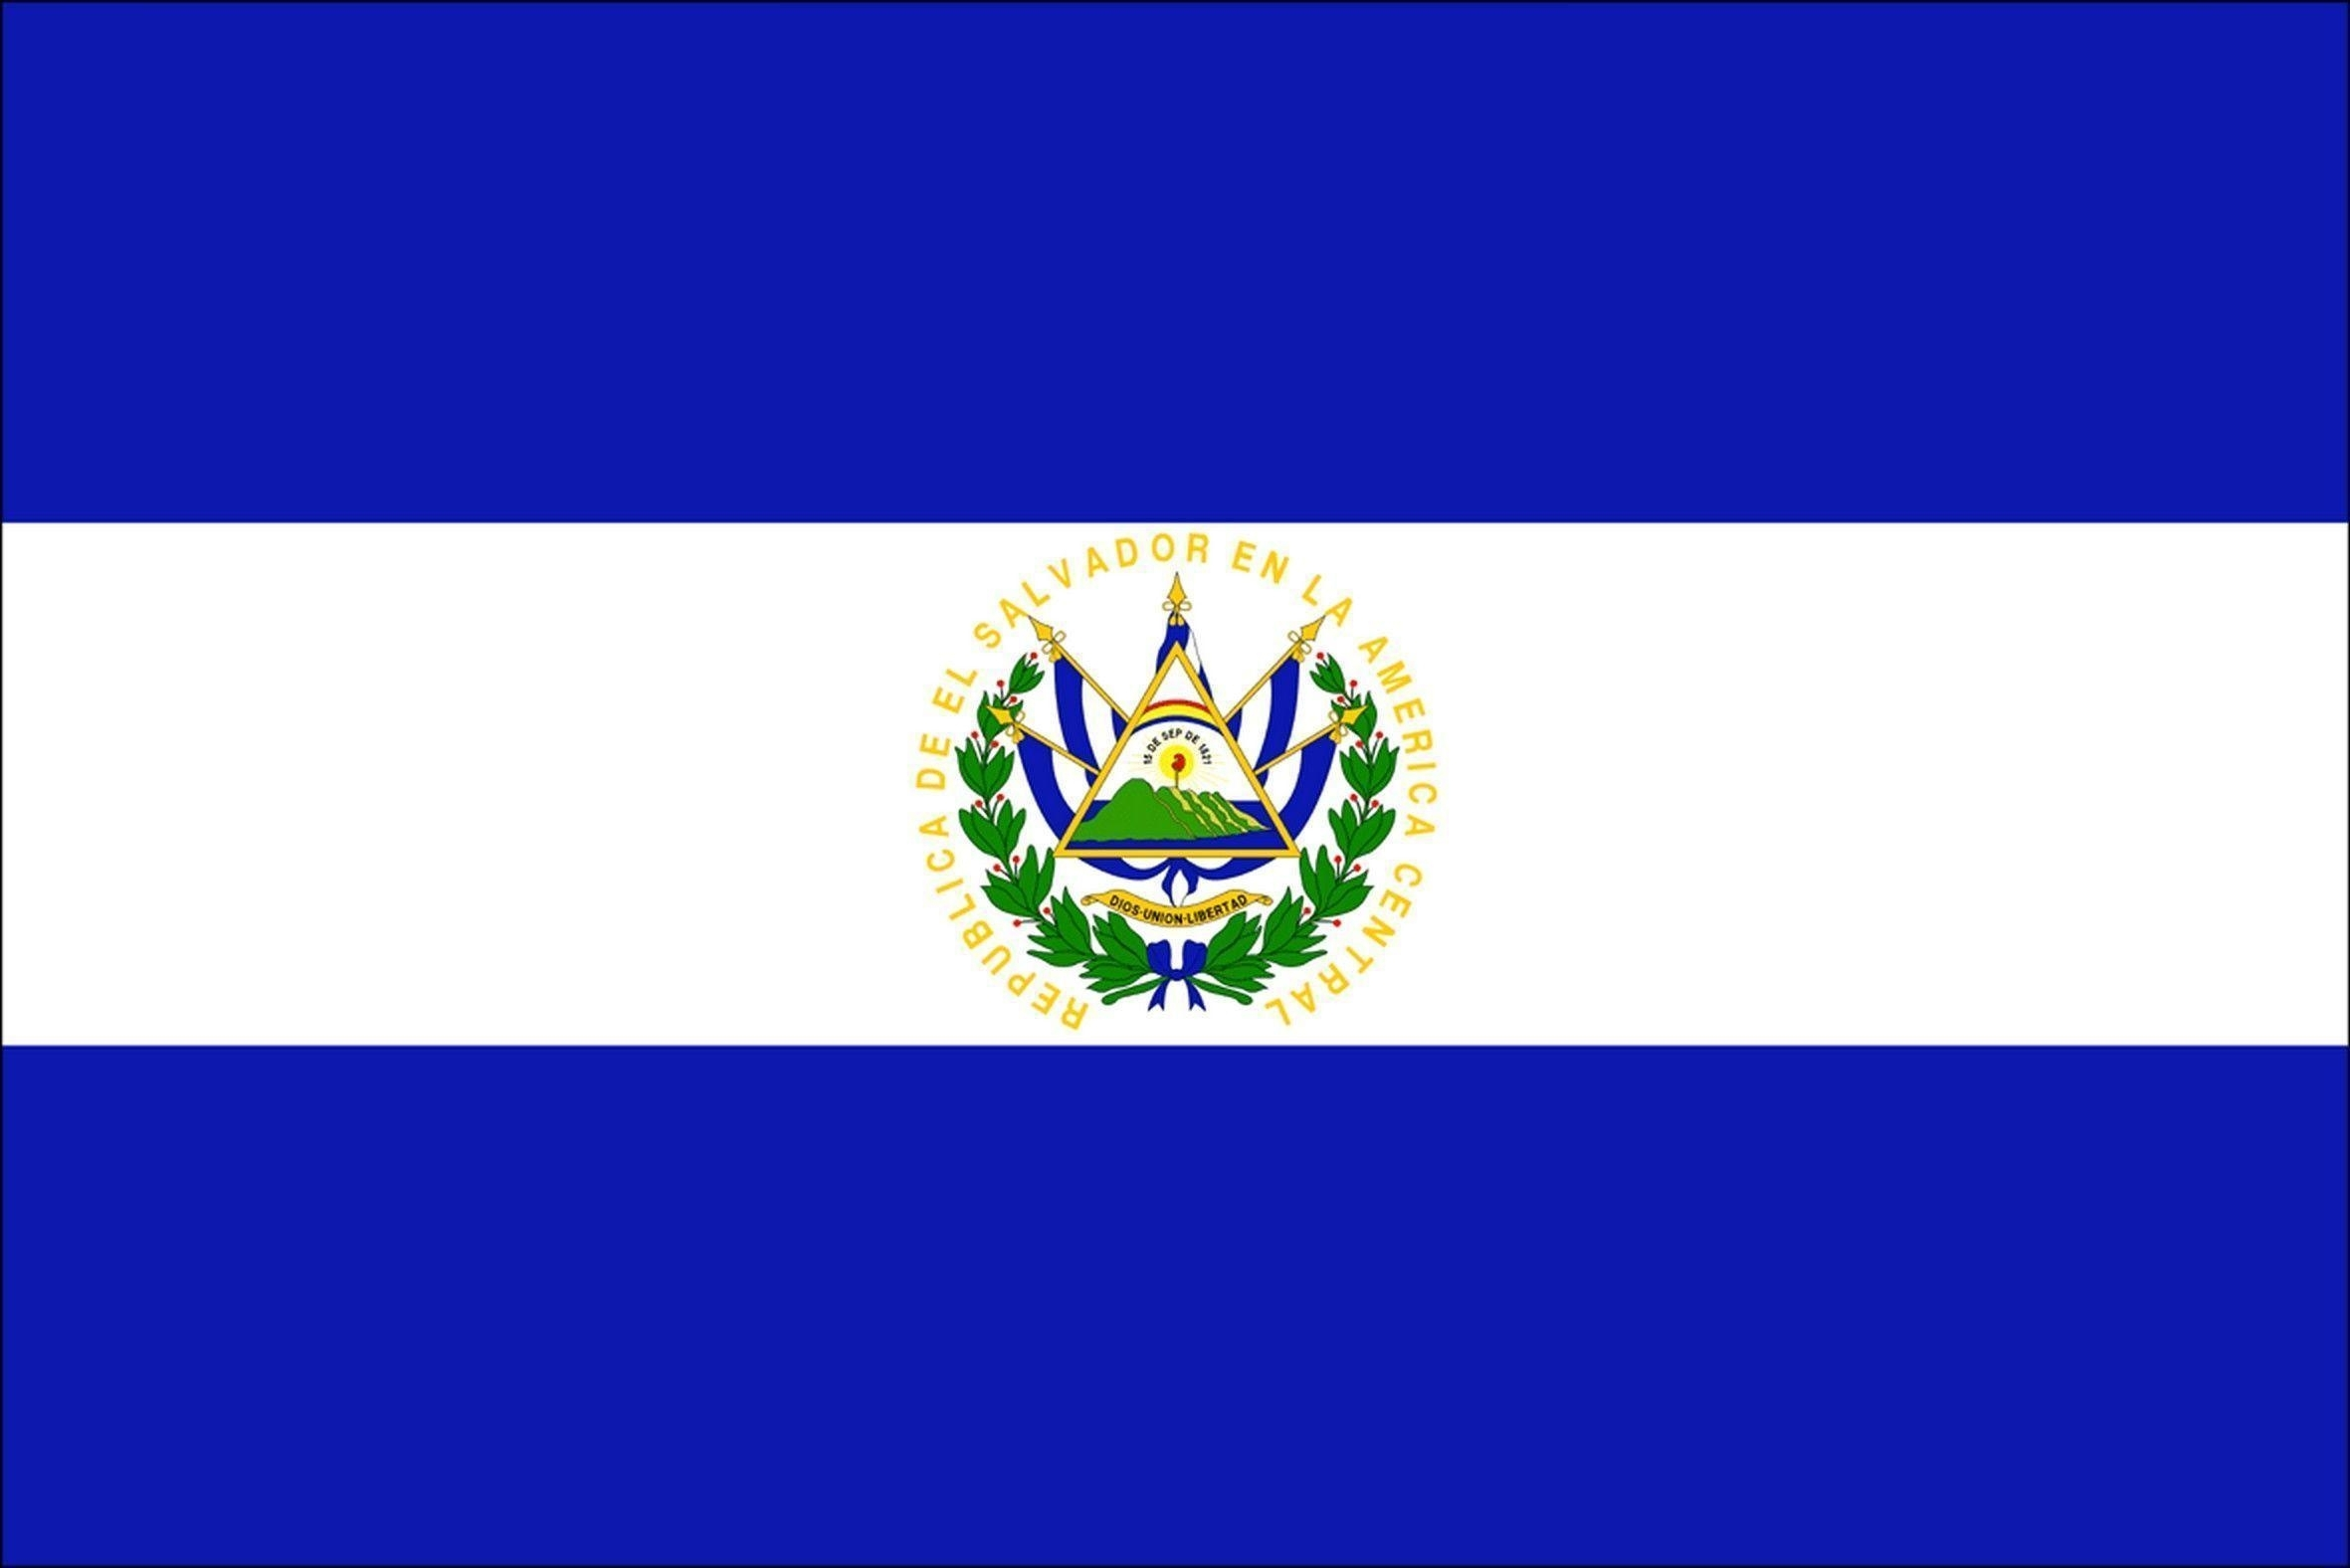 el salvador flag wallpapers - wallpaper cave